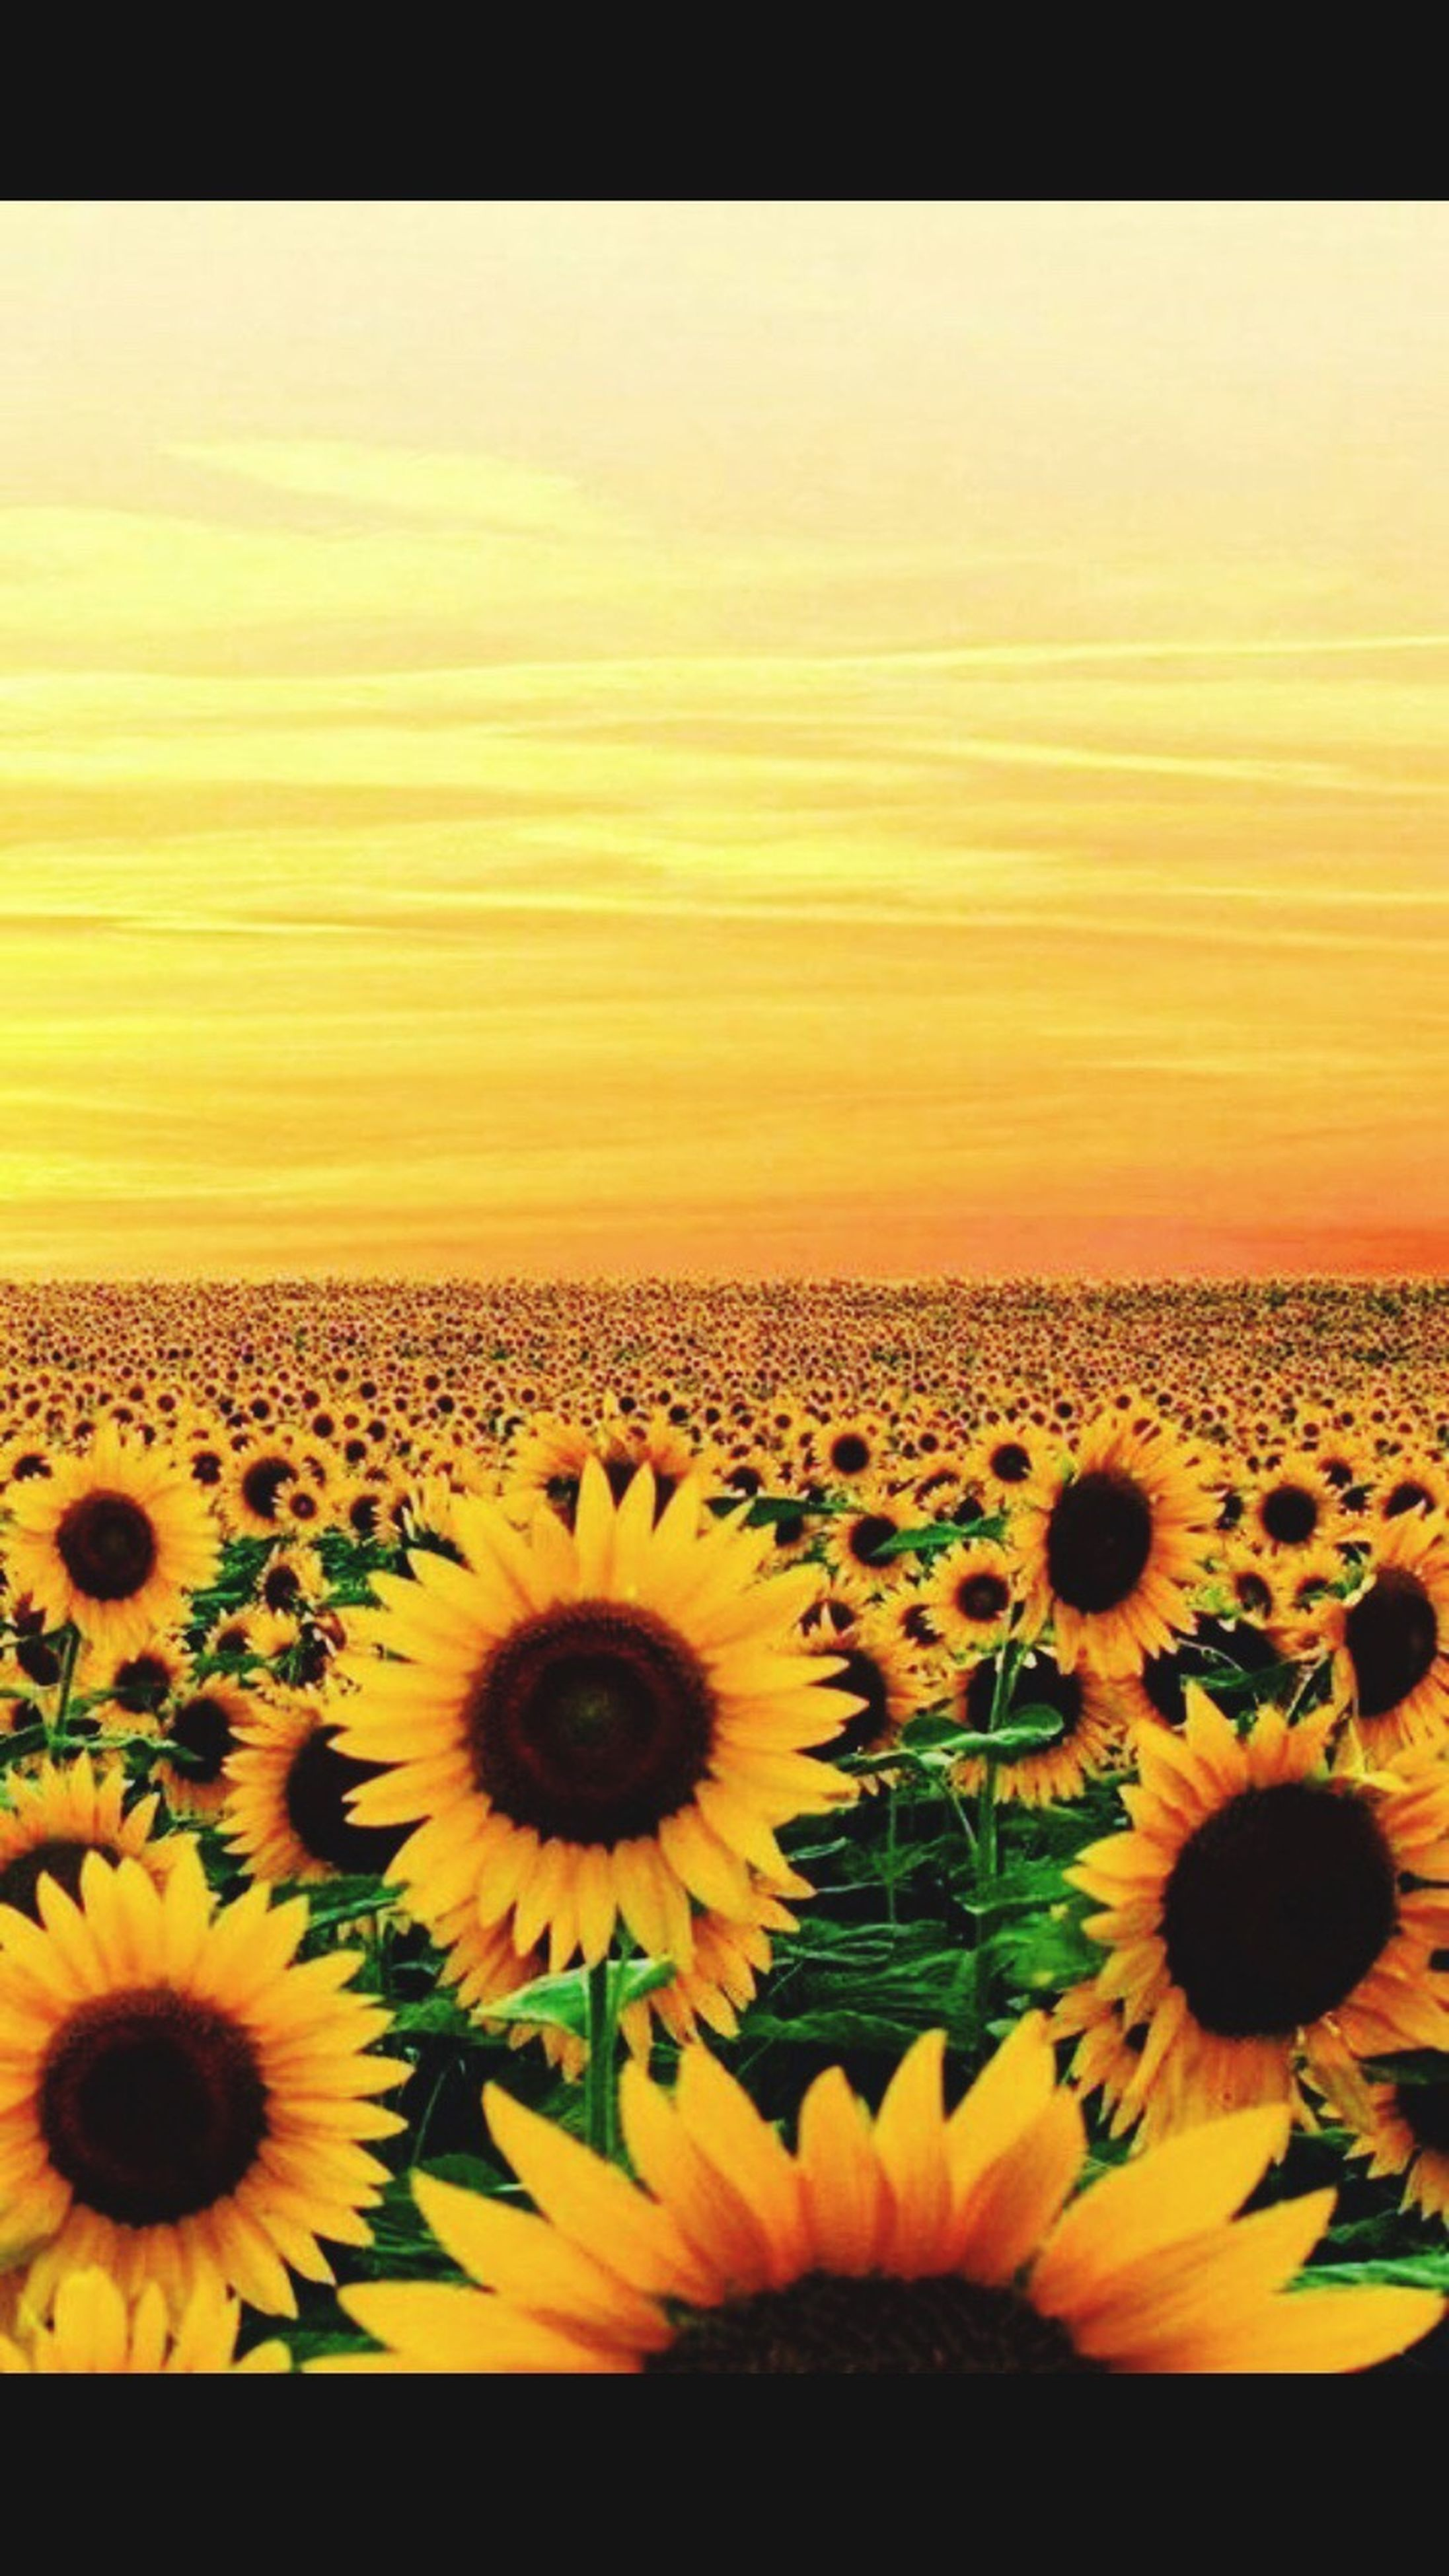 flower, yellow, sunflower, beauty in nature, freshness, flower head, petal, nature, tranquility, romantic sky, vibrant color, tranquil scene, sky, fragility, scenics, no people, blossom, agriculture, pollen, sea